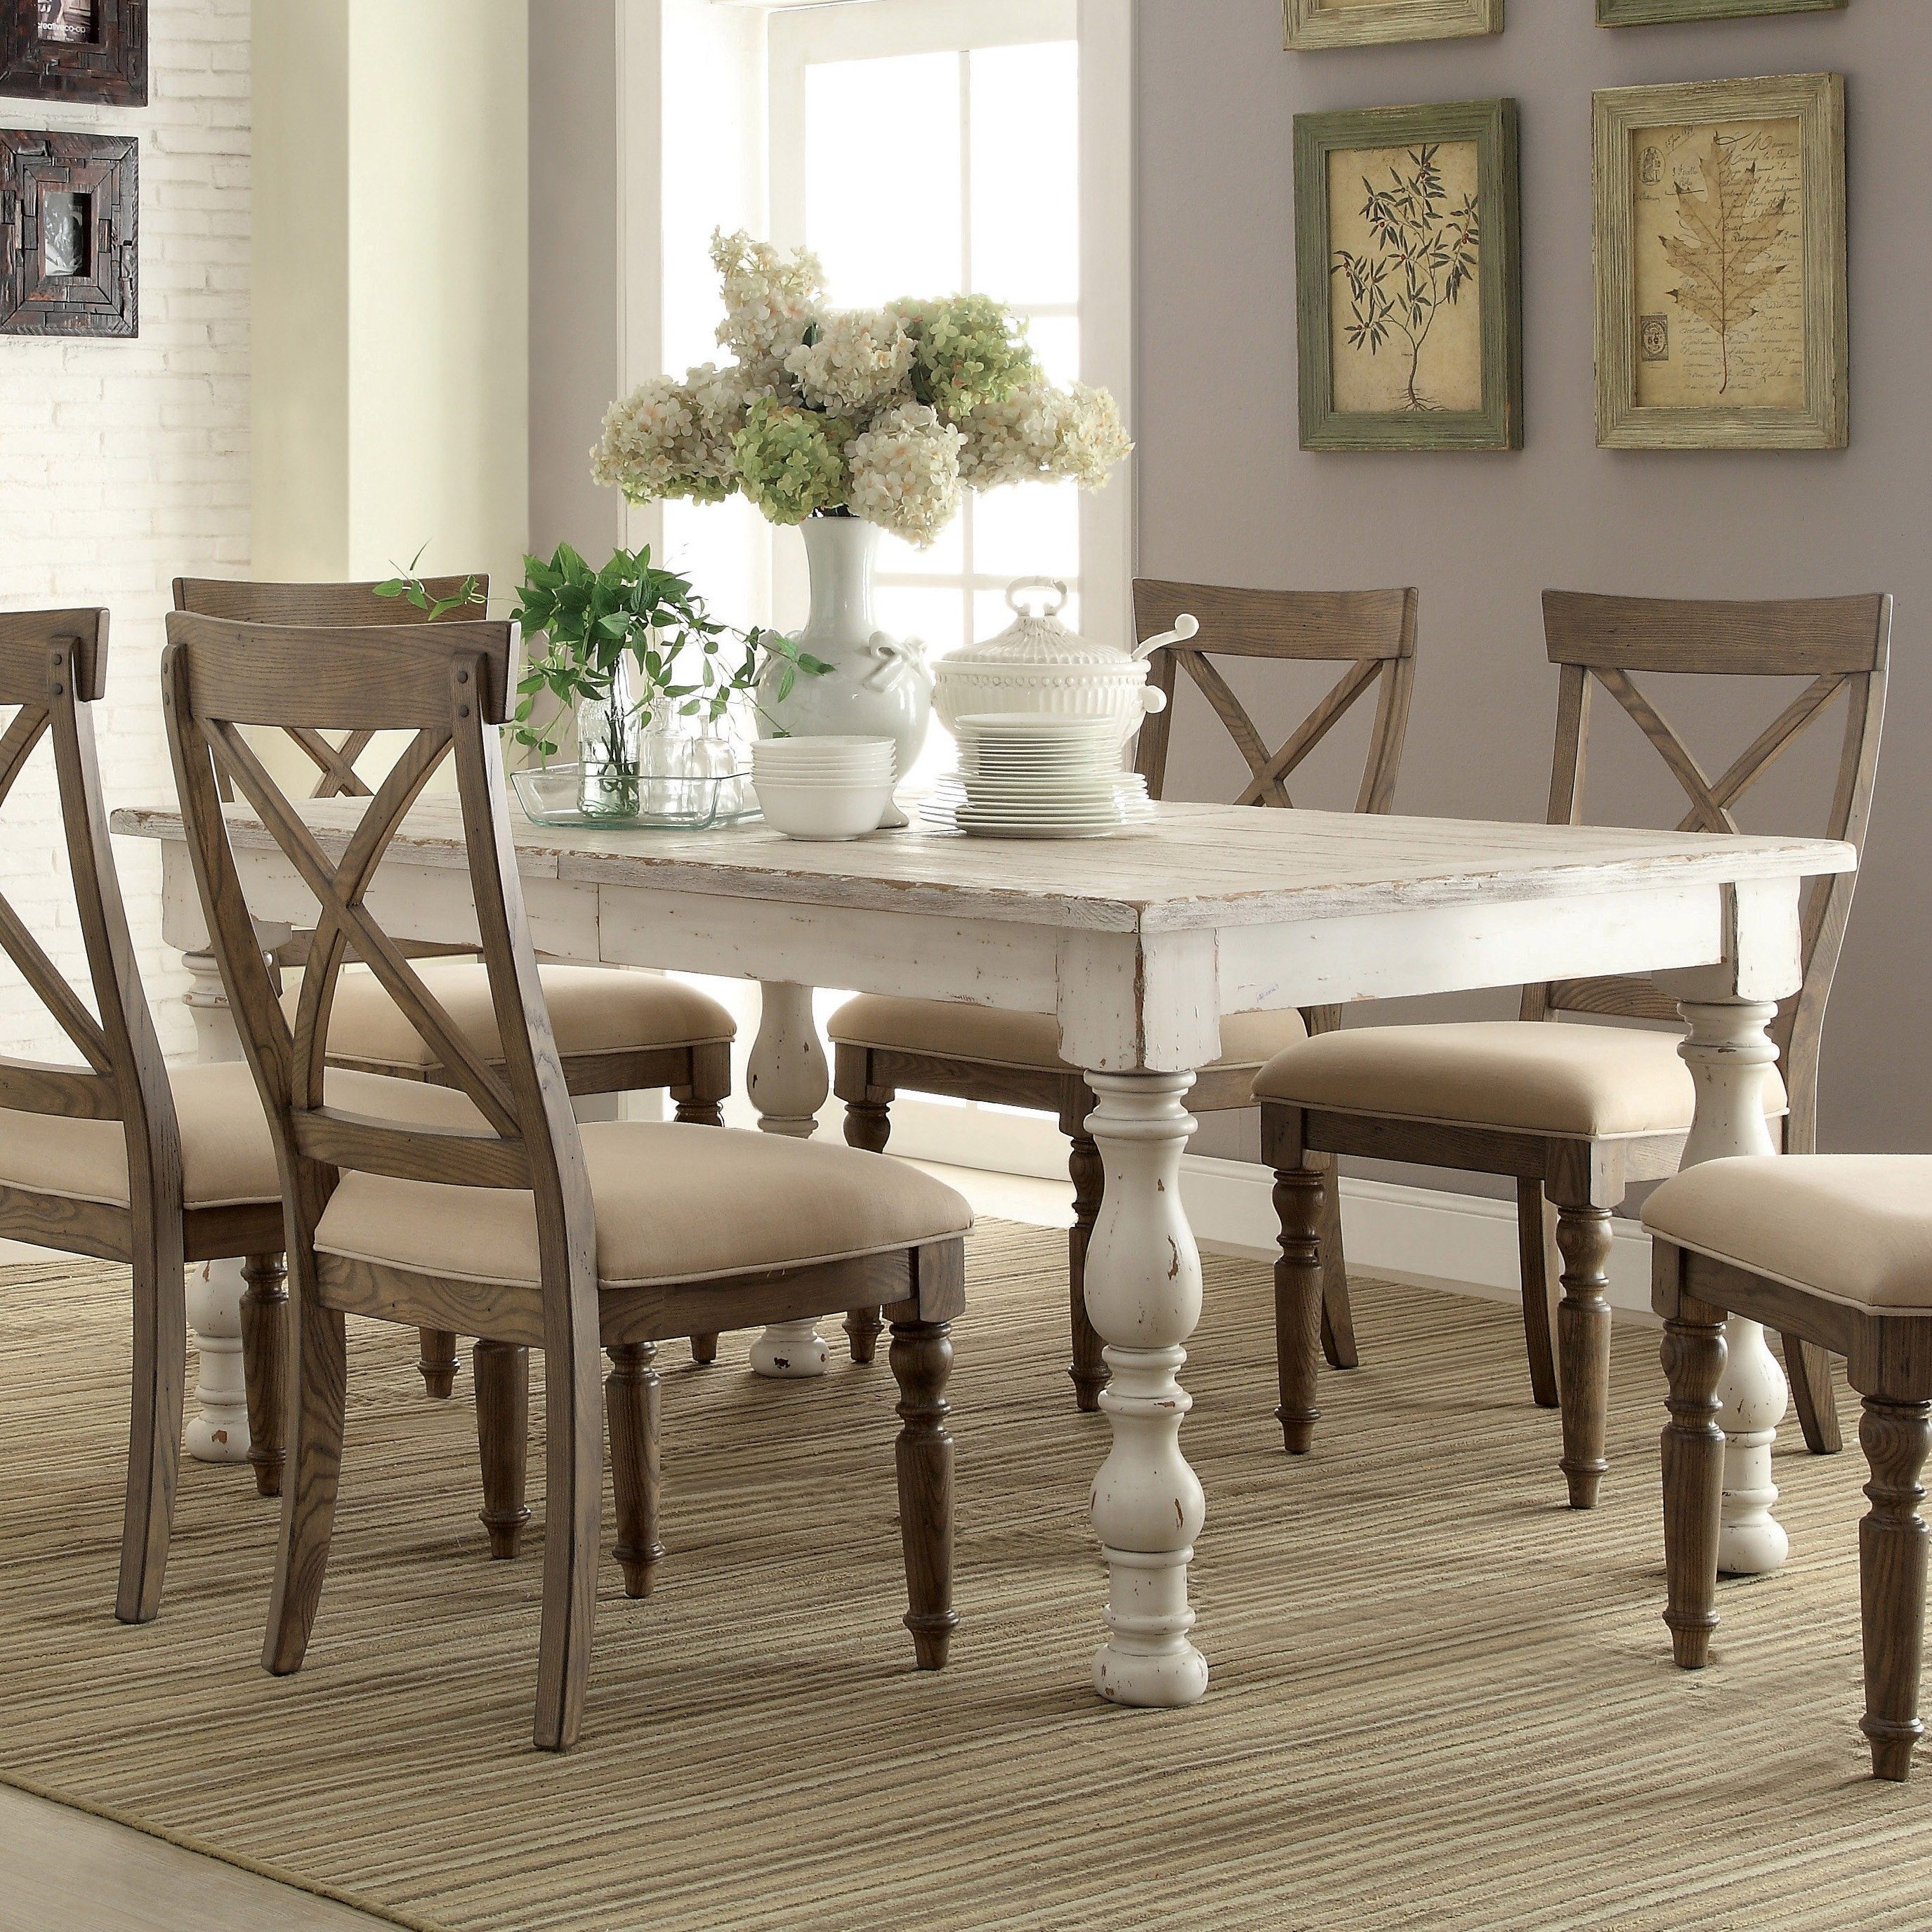 Rectangular Dining Table With Bench: Aberdeen Wood Rectangular Dining Table And Chairs In